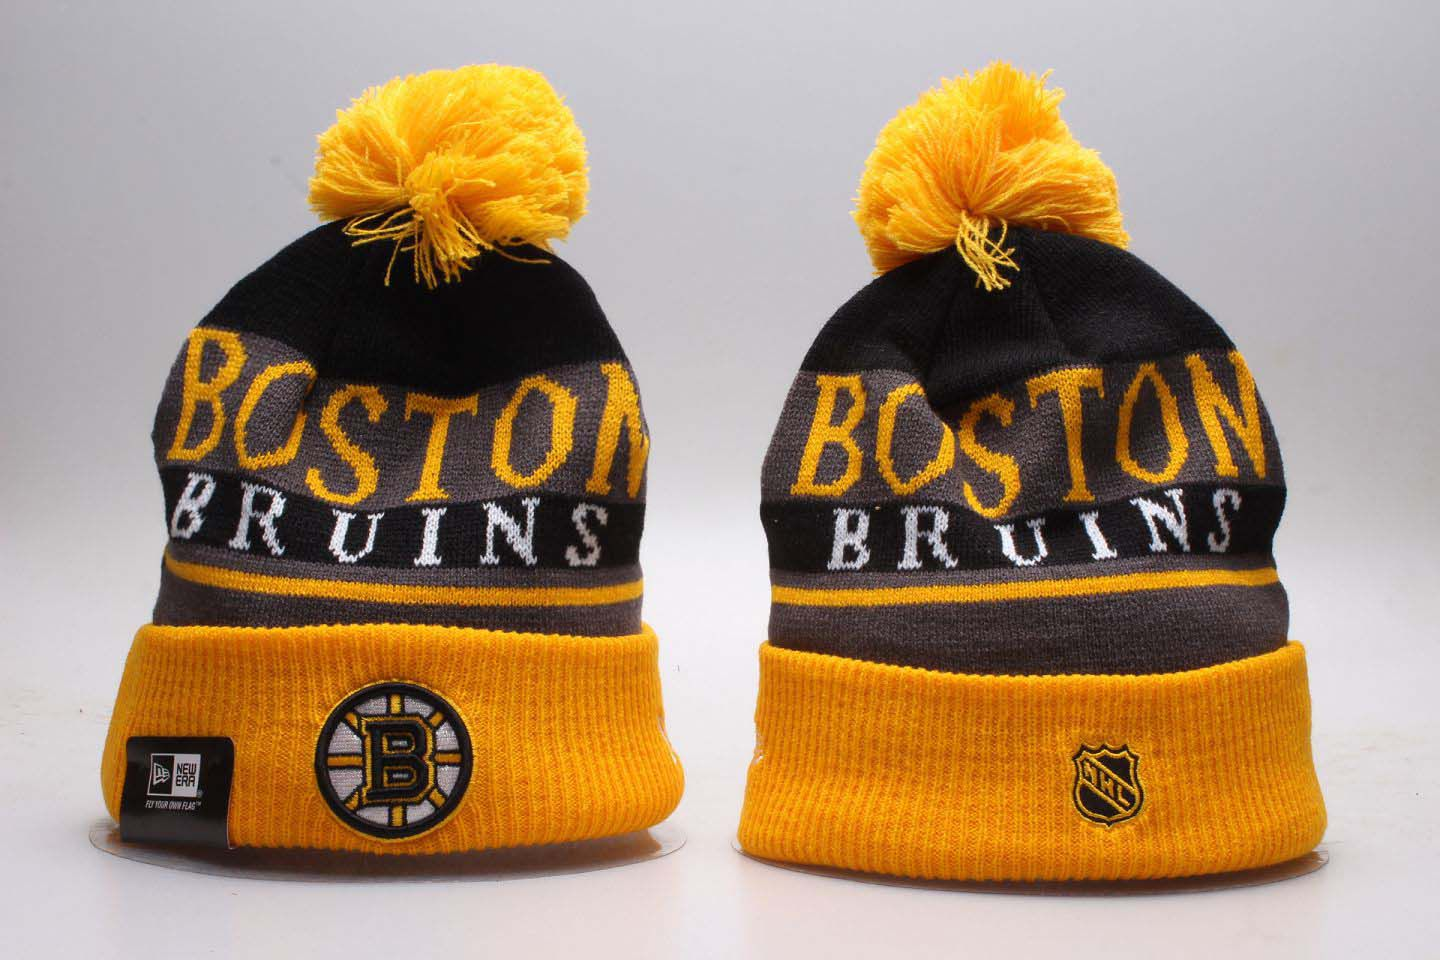 NHL Boston Bruins Beanie hot hat2